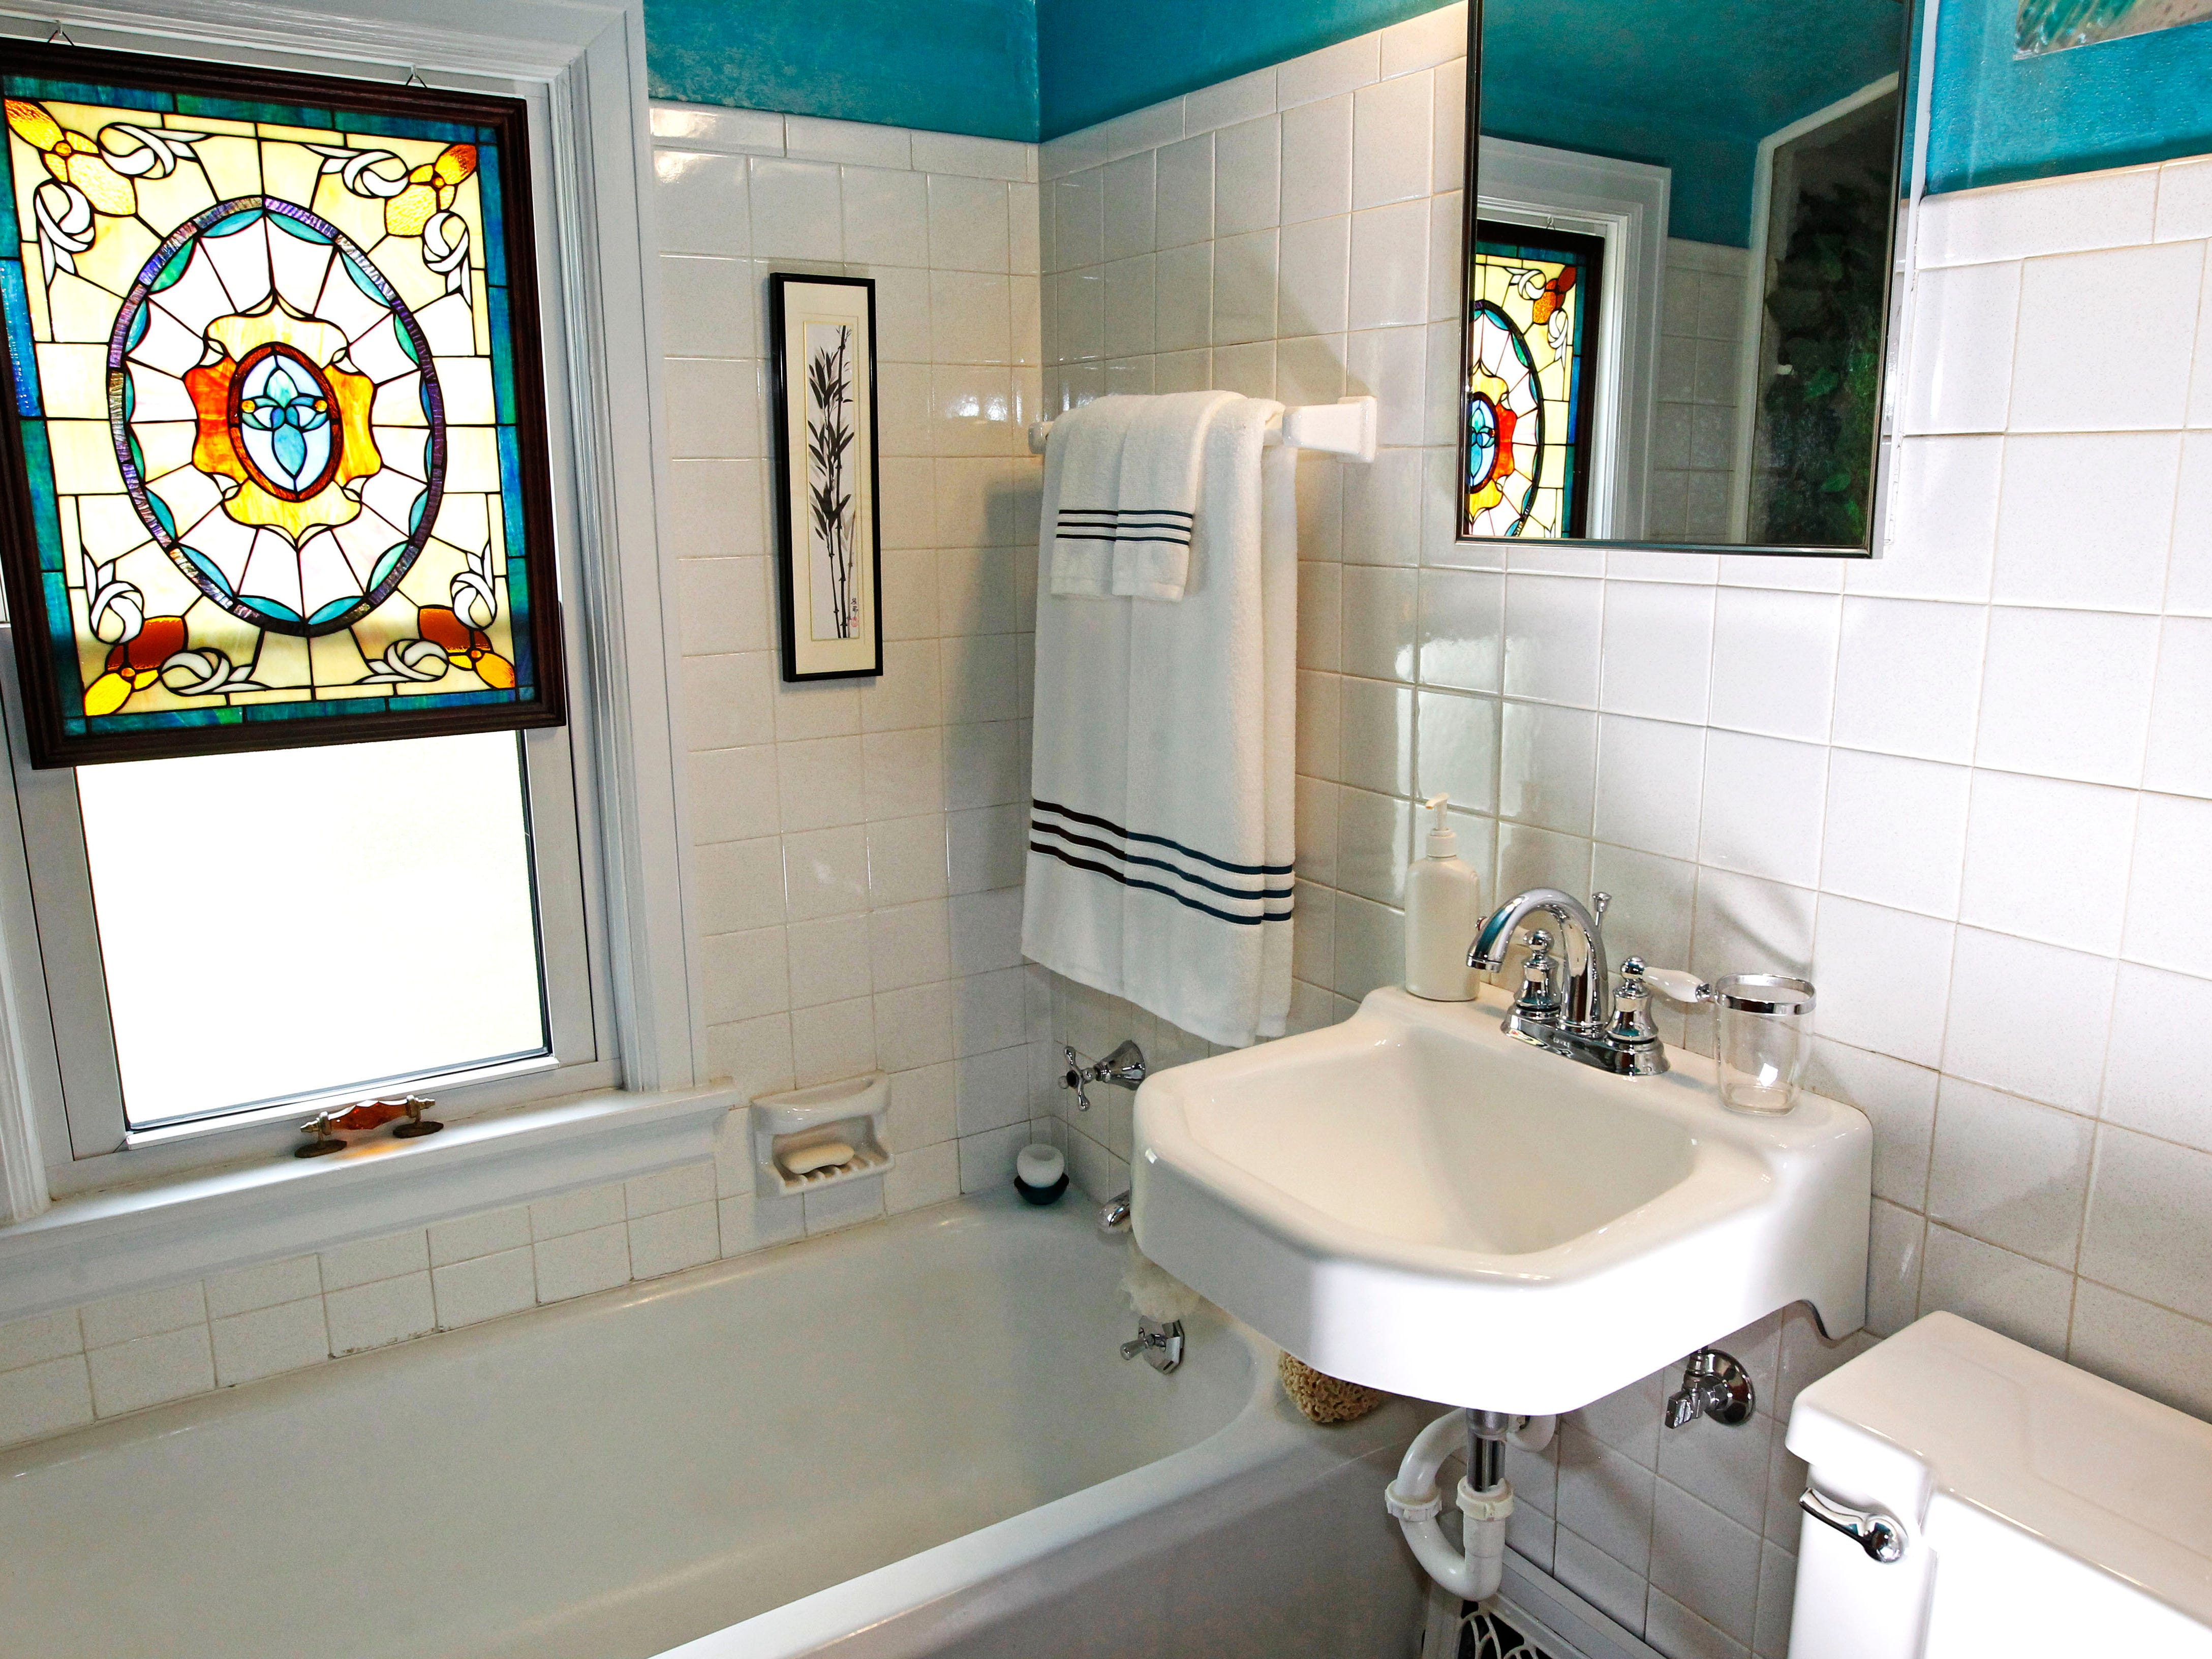 The upstairs bathroom is done in bright aqua blue with white  tile walls.